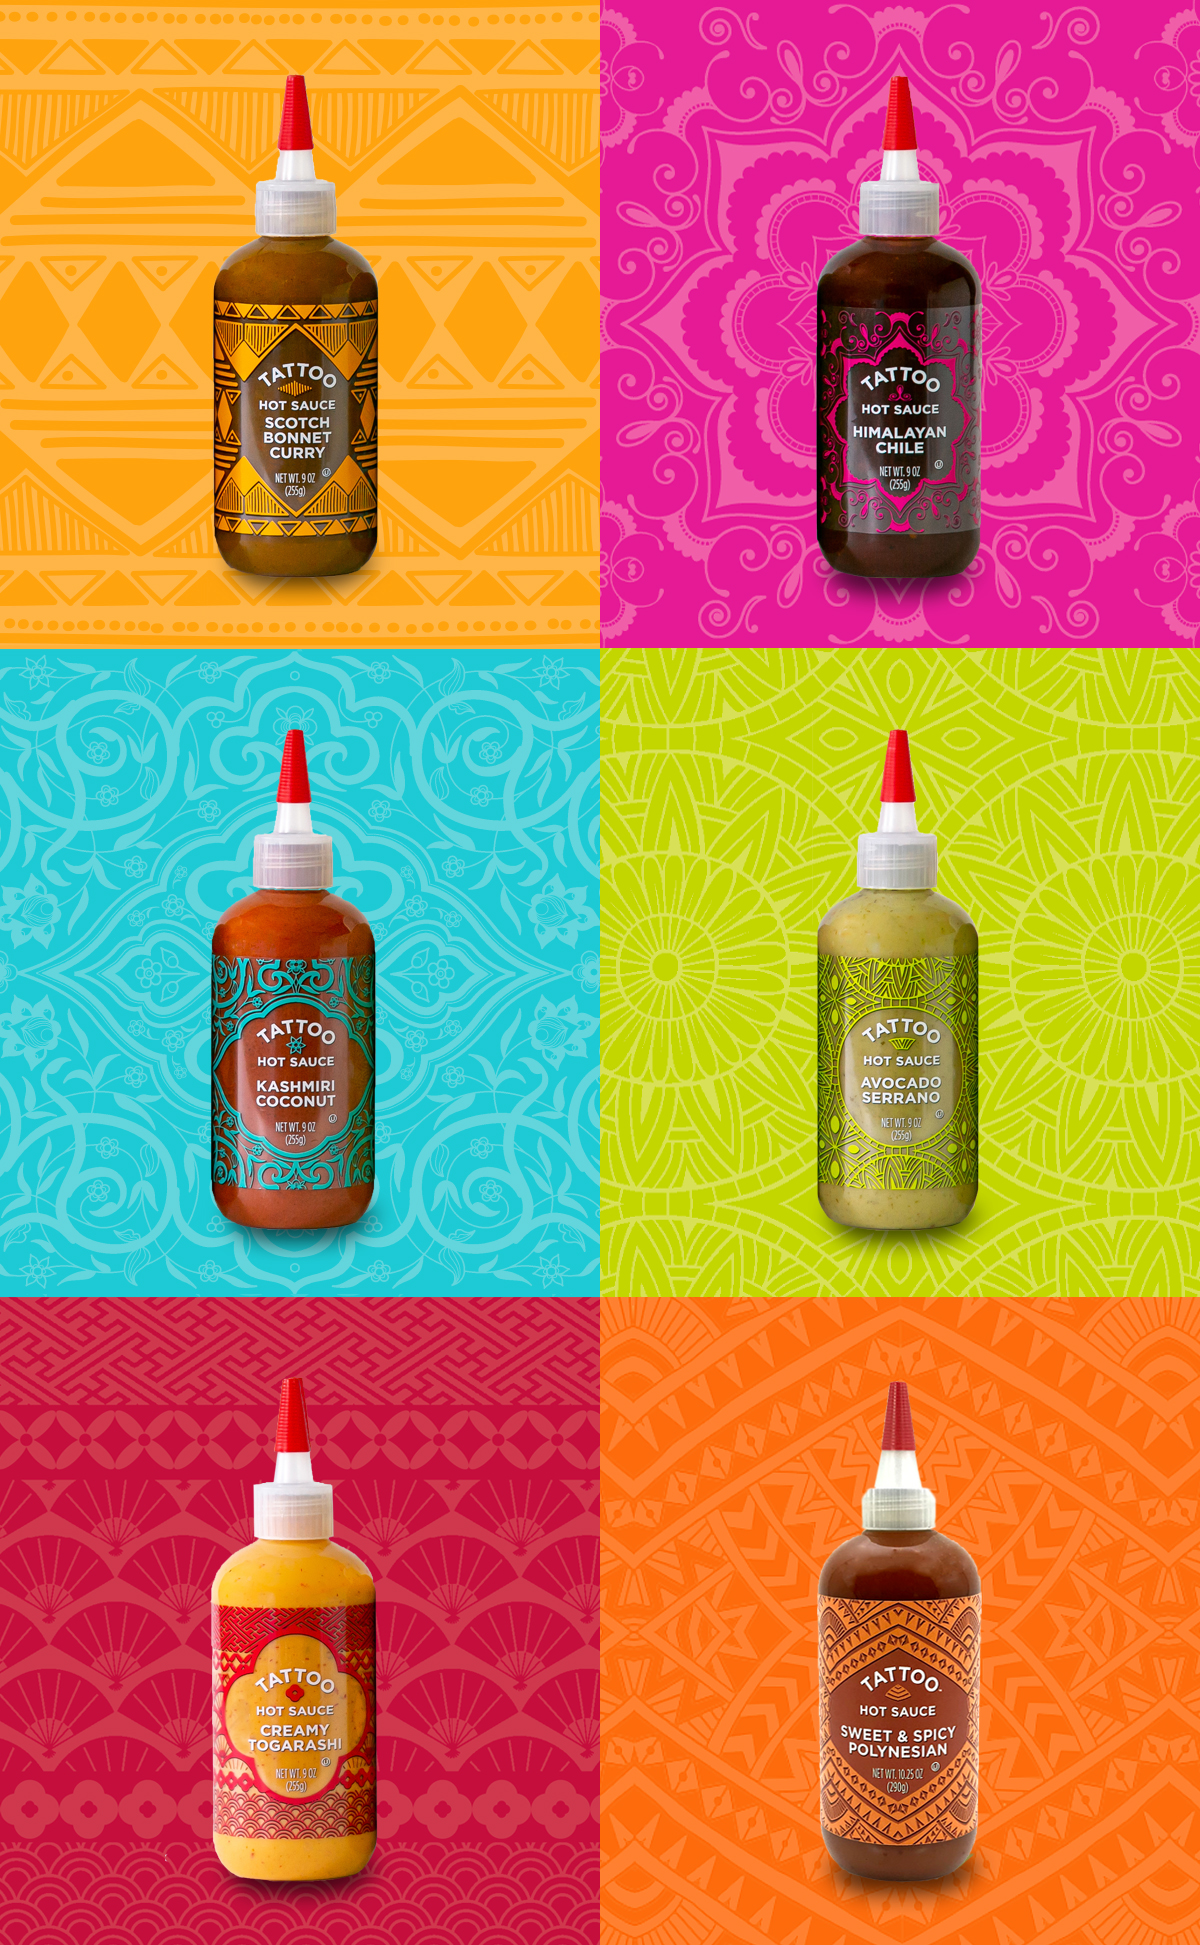 photo of Tattoo hot sauce branding package design